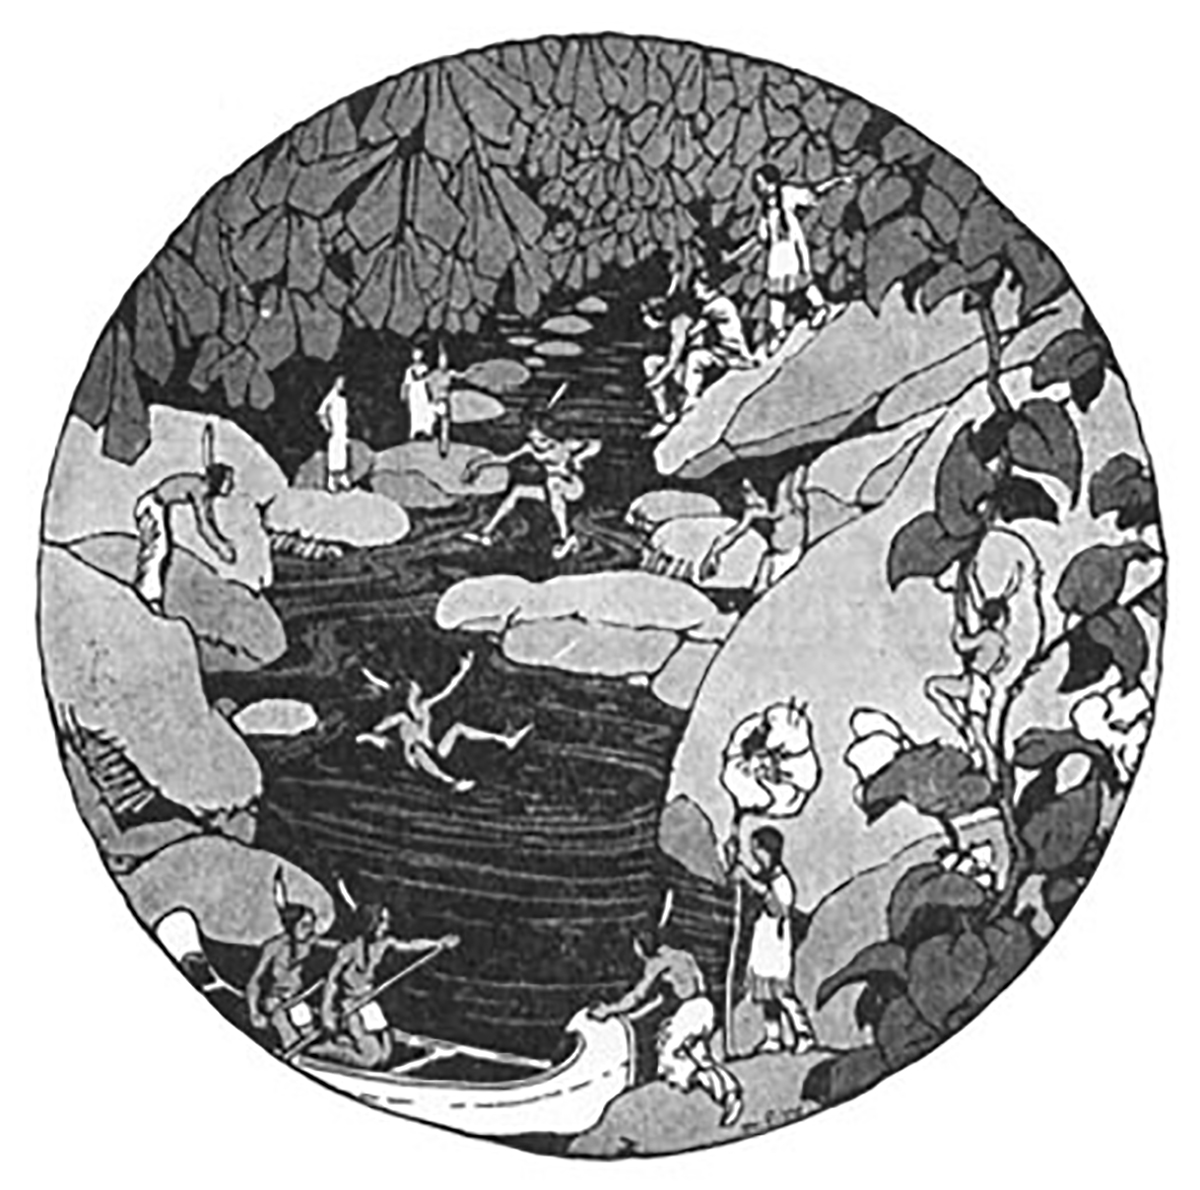 Iroquois fairies from Stories the Iroquois Tell Their Children by Mabel Powers